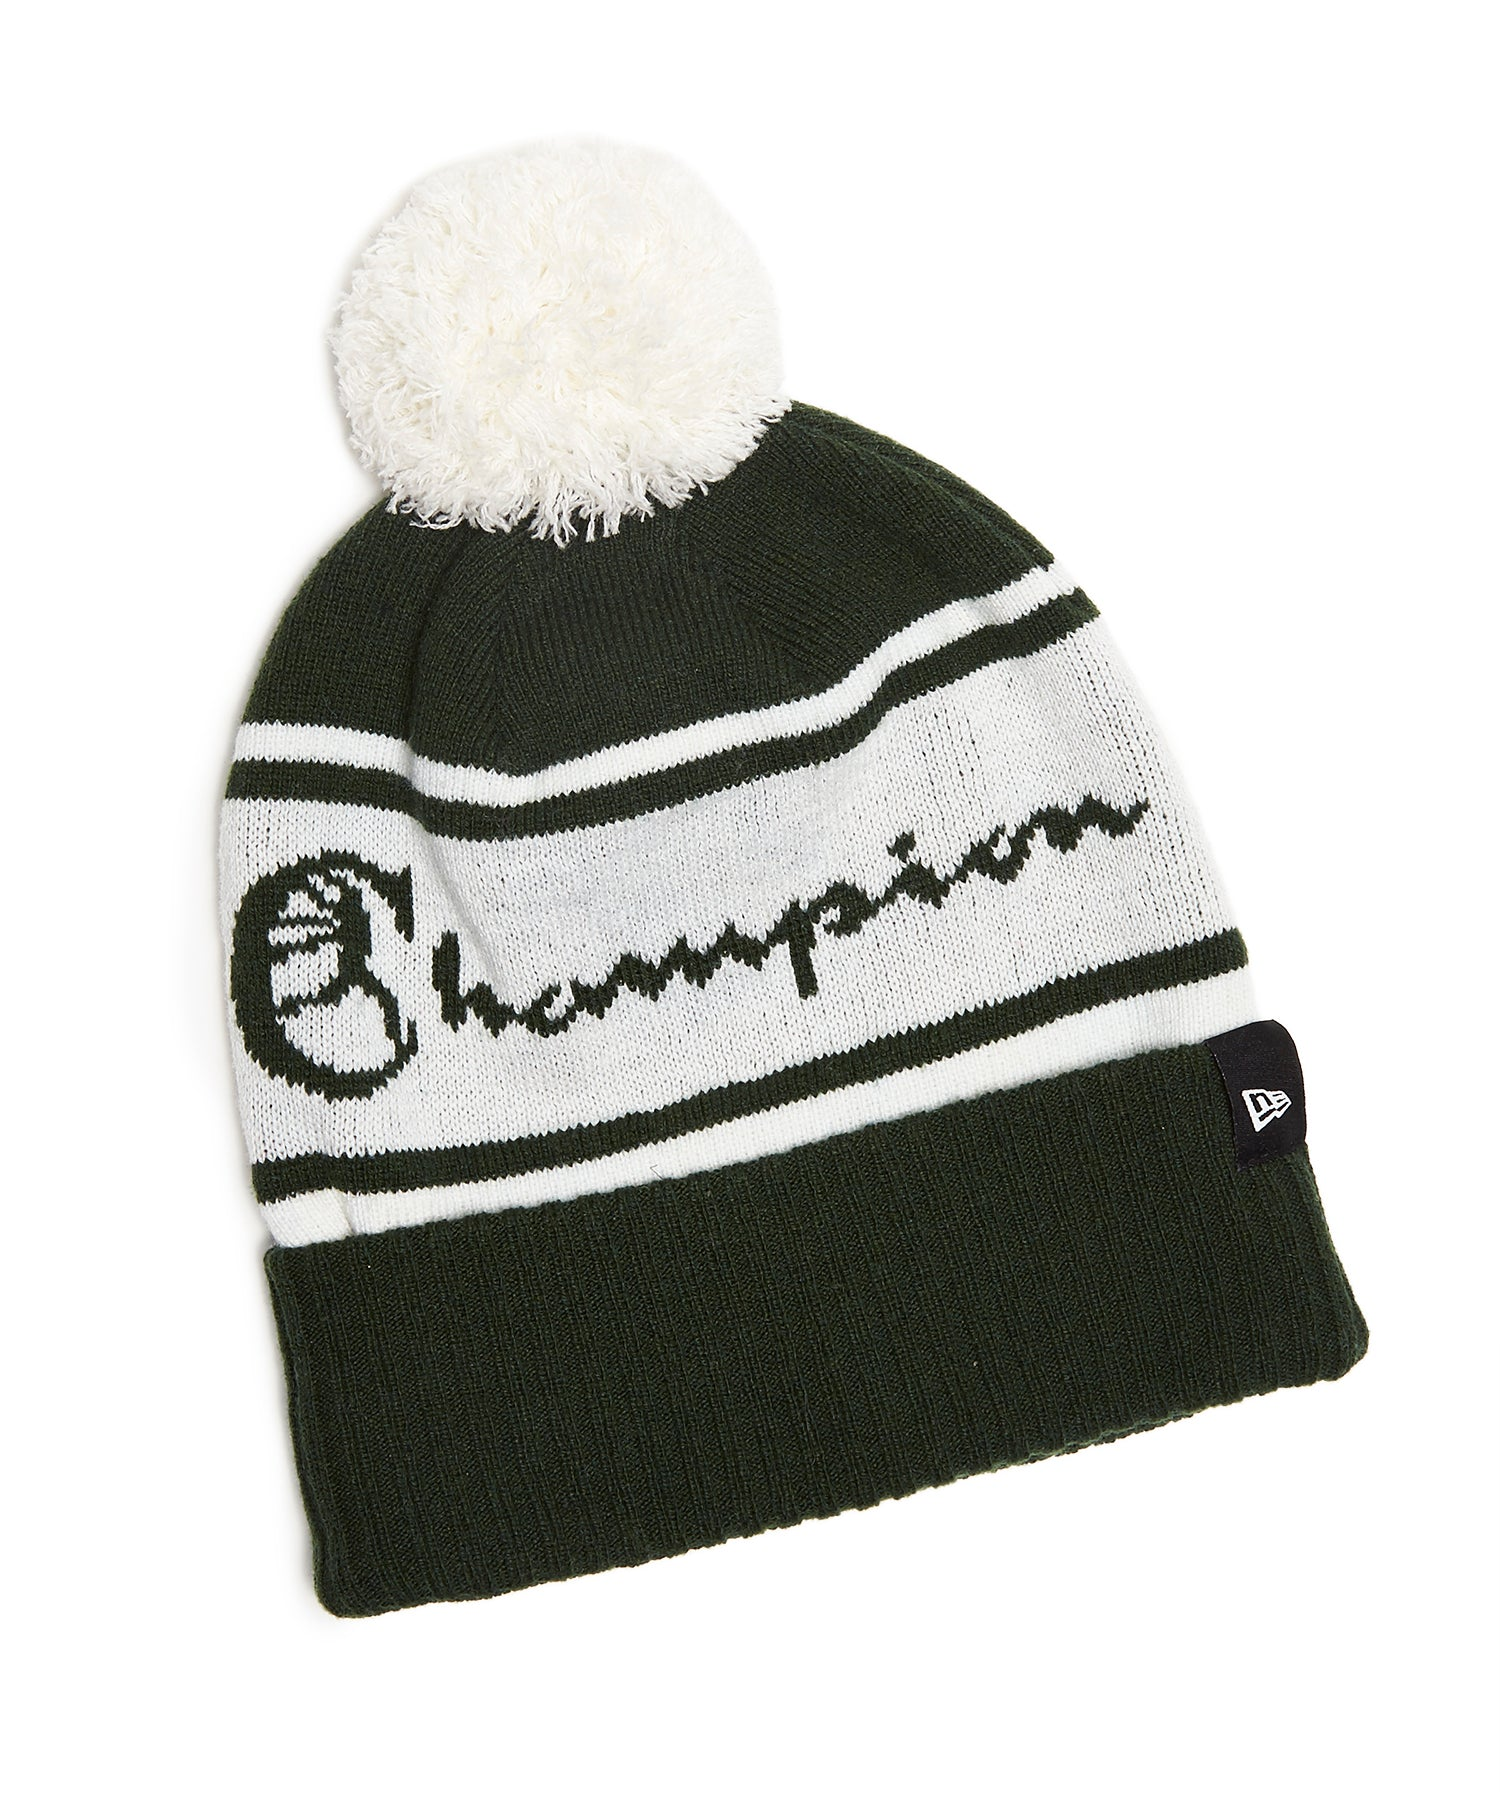 Champion + New Era Pom Pom Beanie in Dark Green